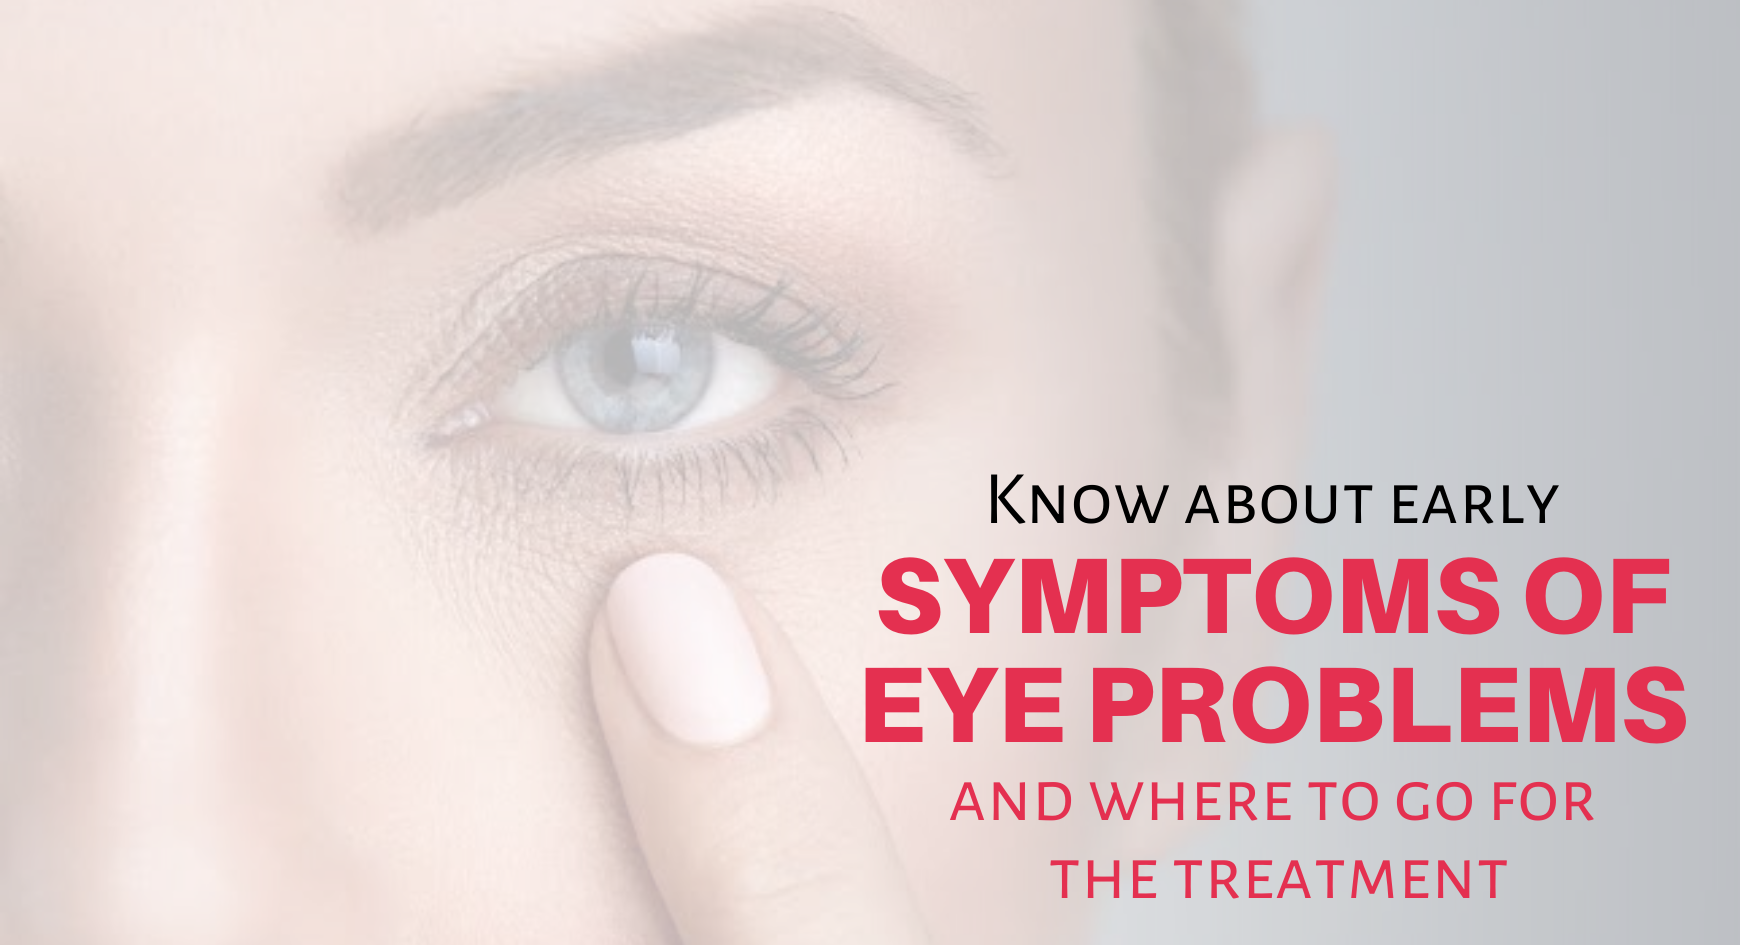 Know about early symptoms of eye problems and where to go for the treatment